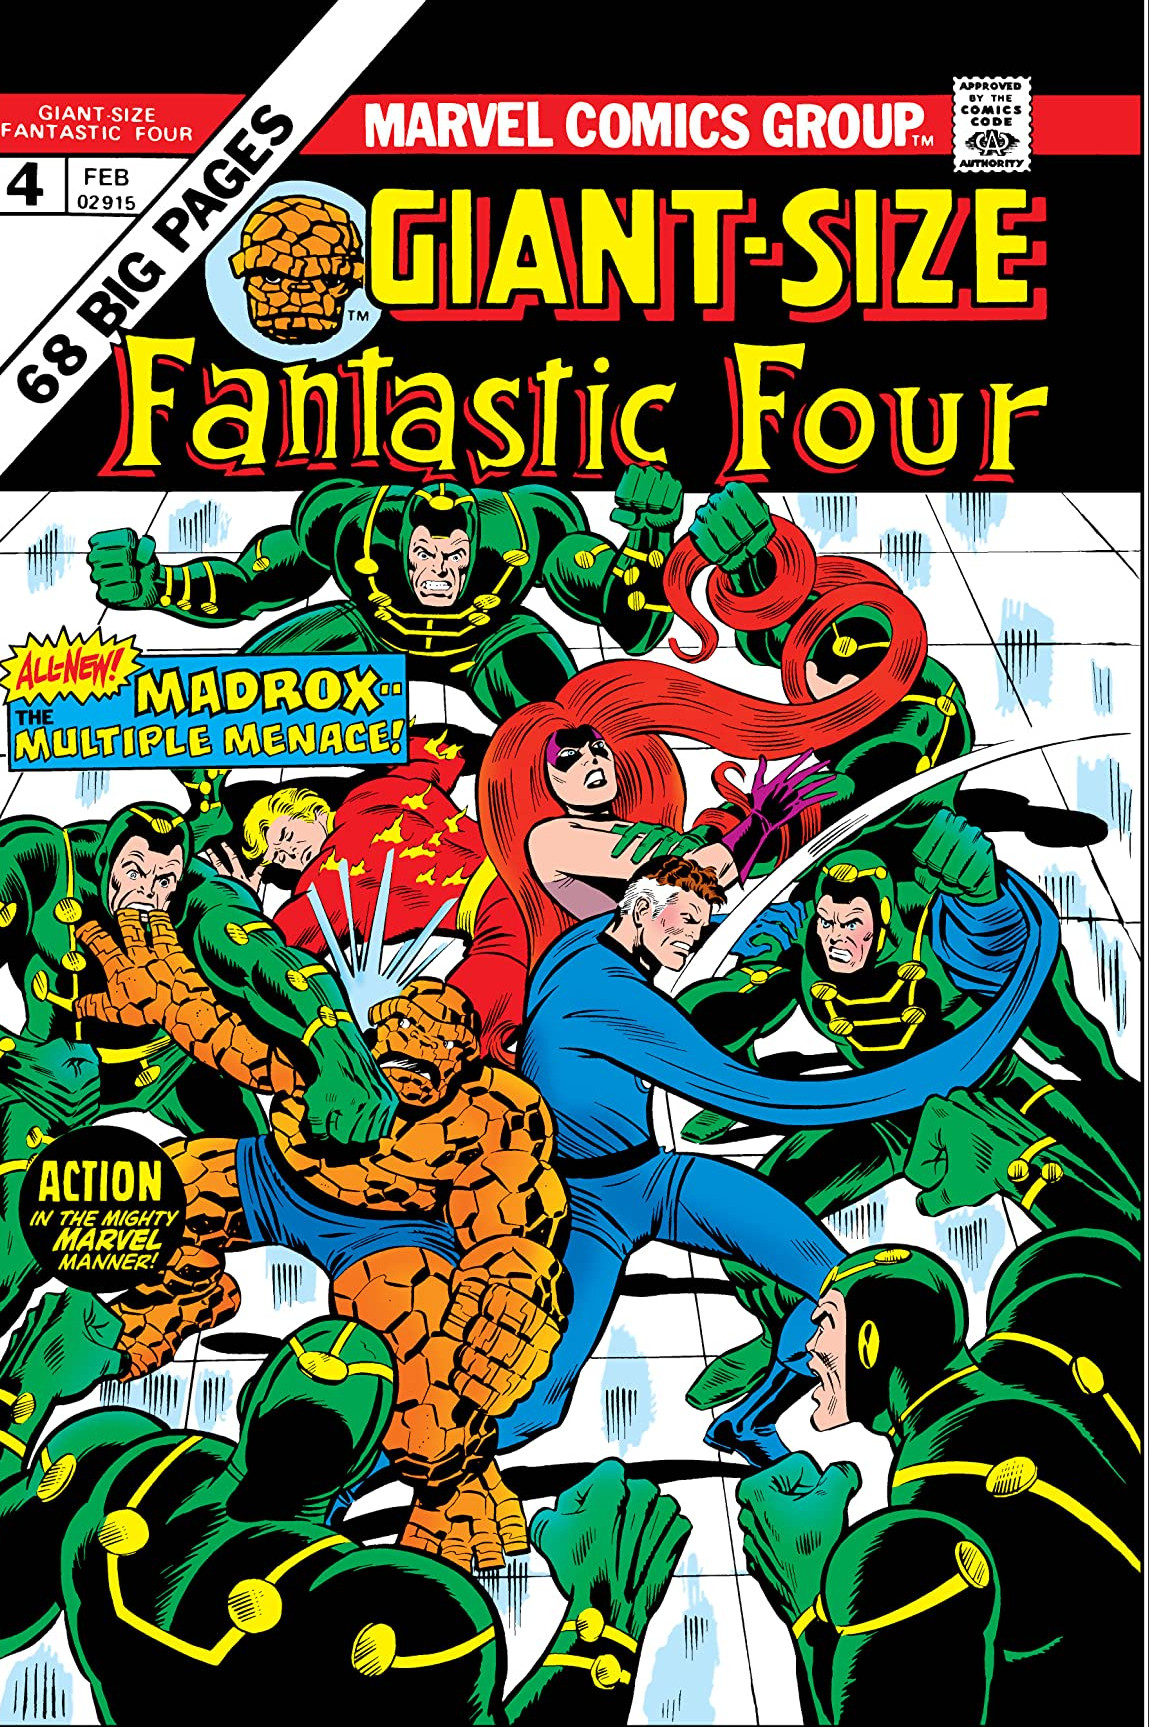 Giant-Size Fantastic Four Vol 1 4